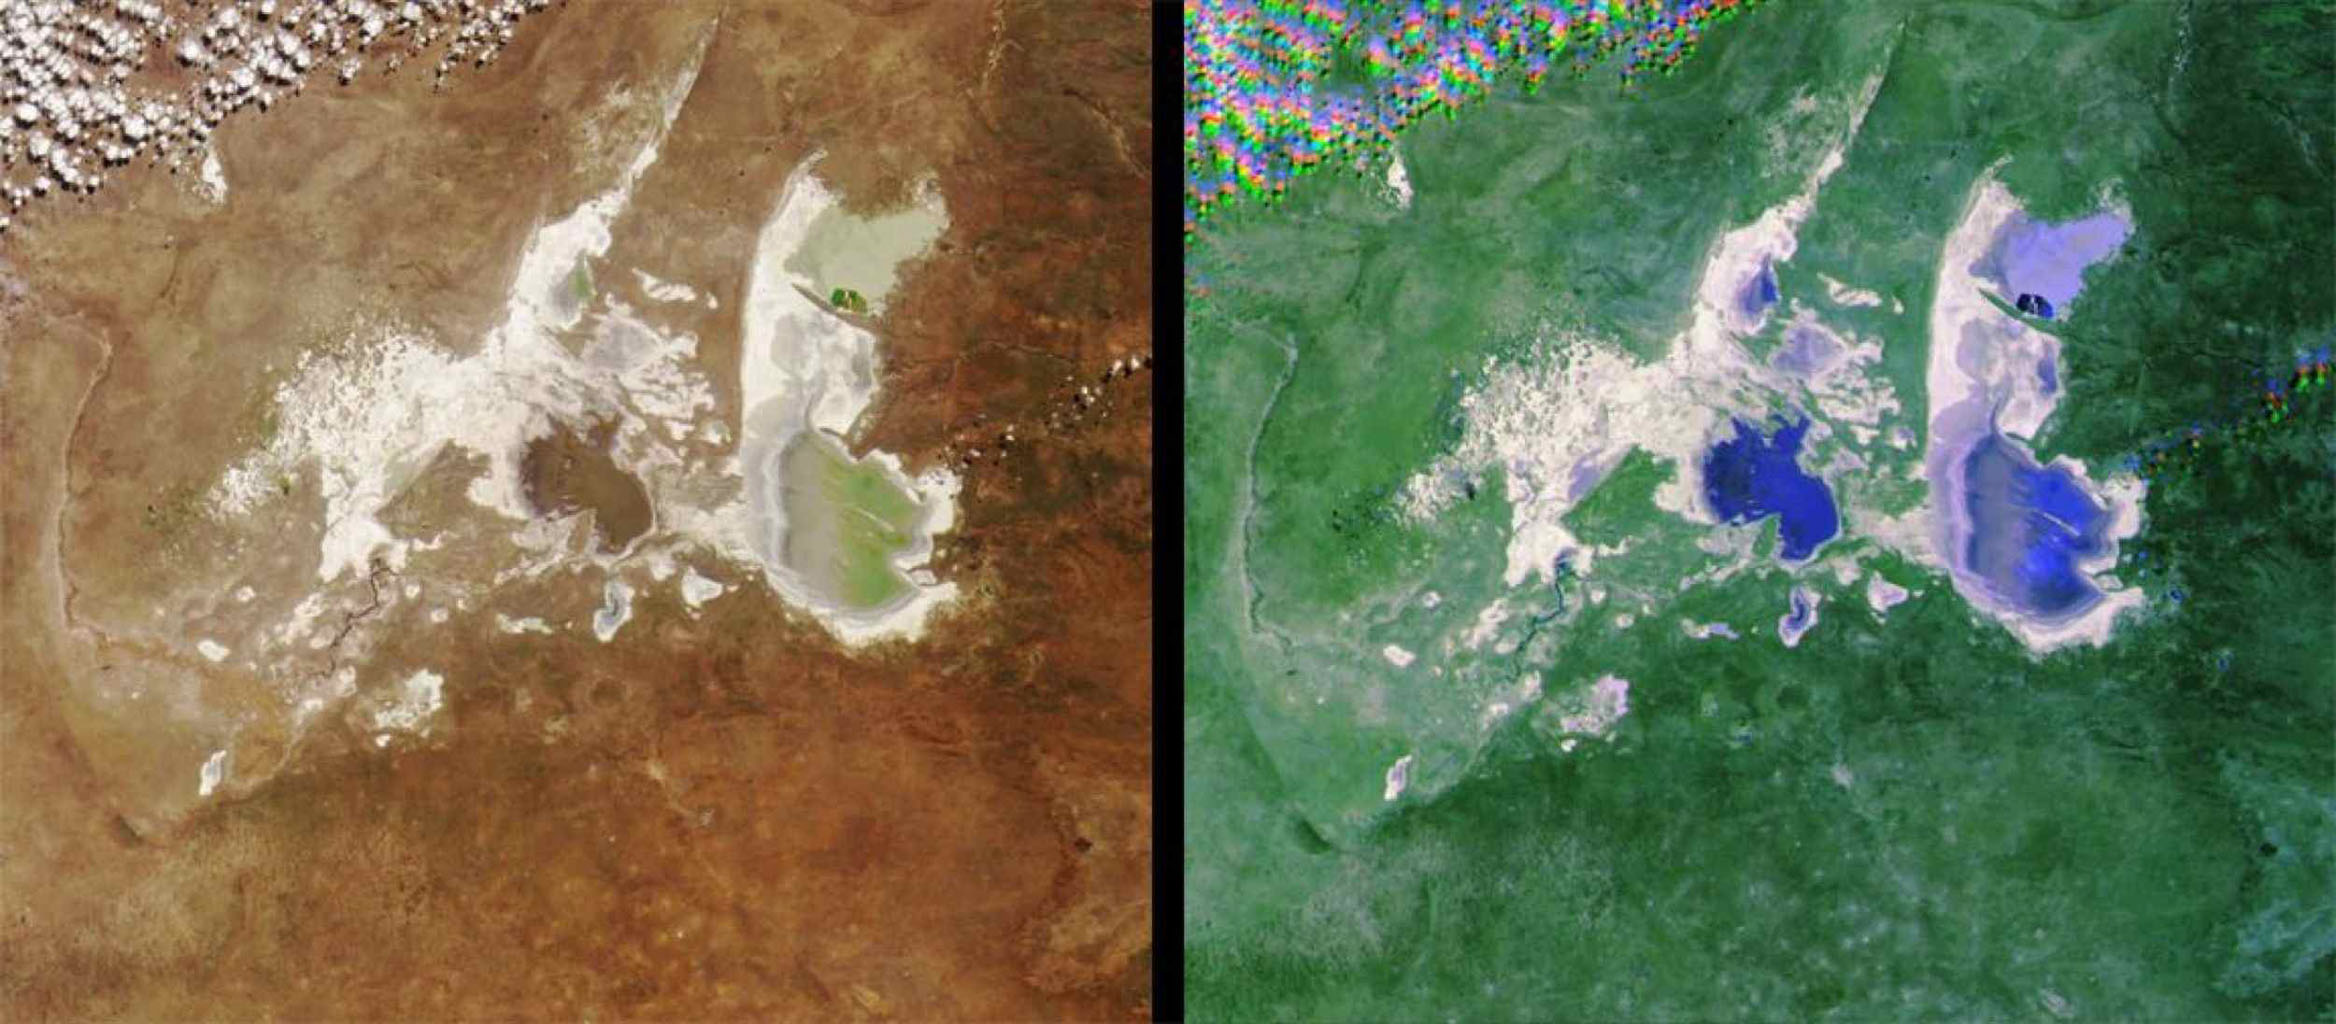 These images from NASA's Terra satellite images of the Ntwetwe and Sua Pans in northeastern Botswana were acquired on August 18, 2000 (Terra orbit 3553).